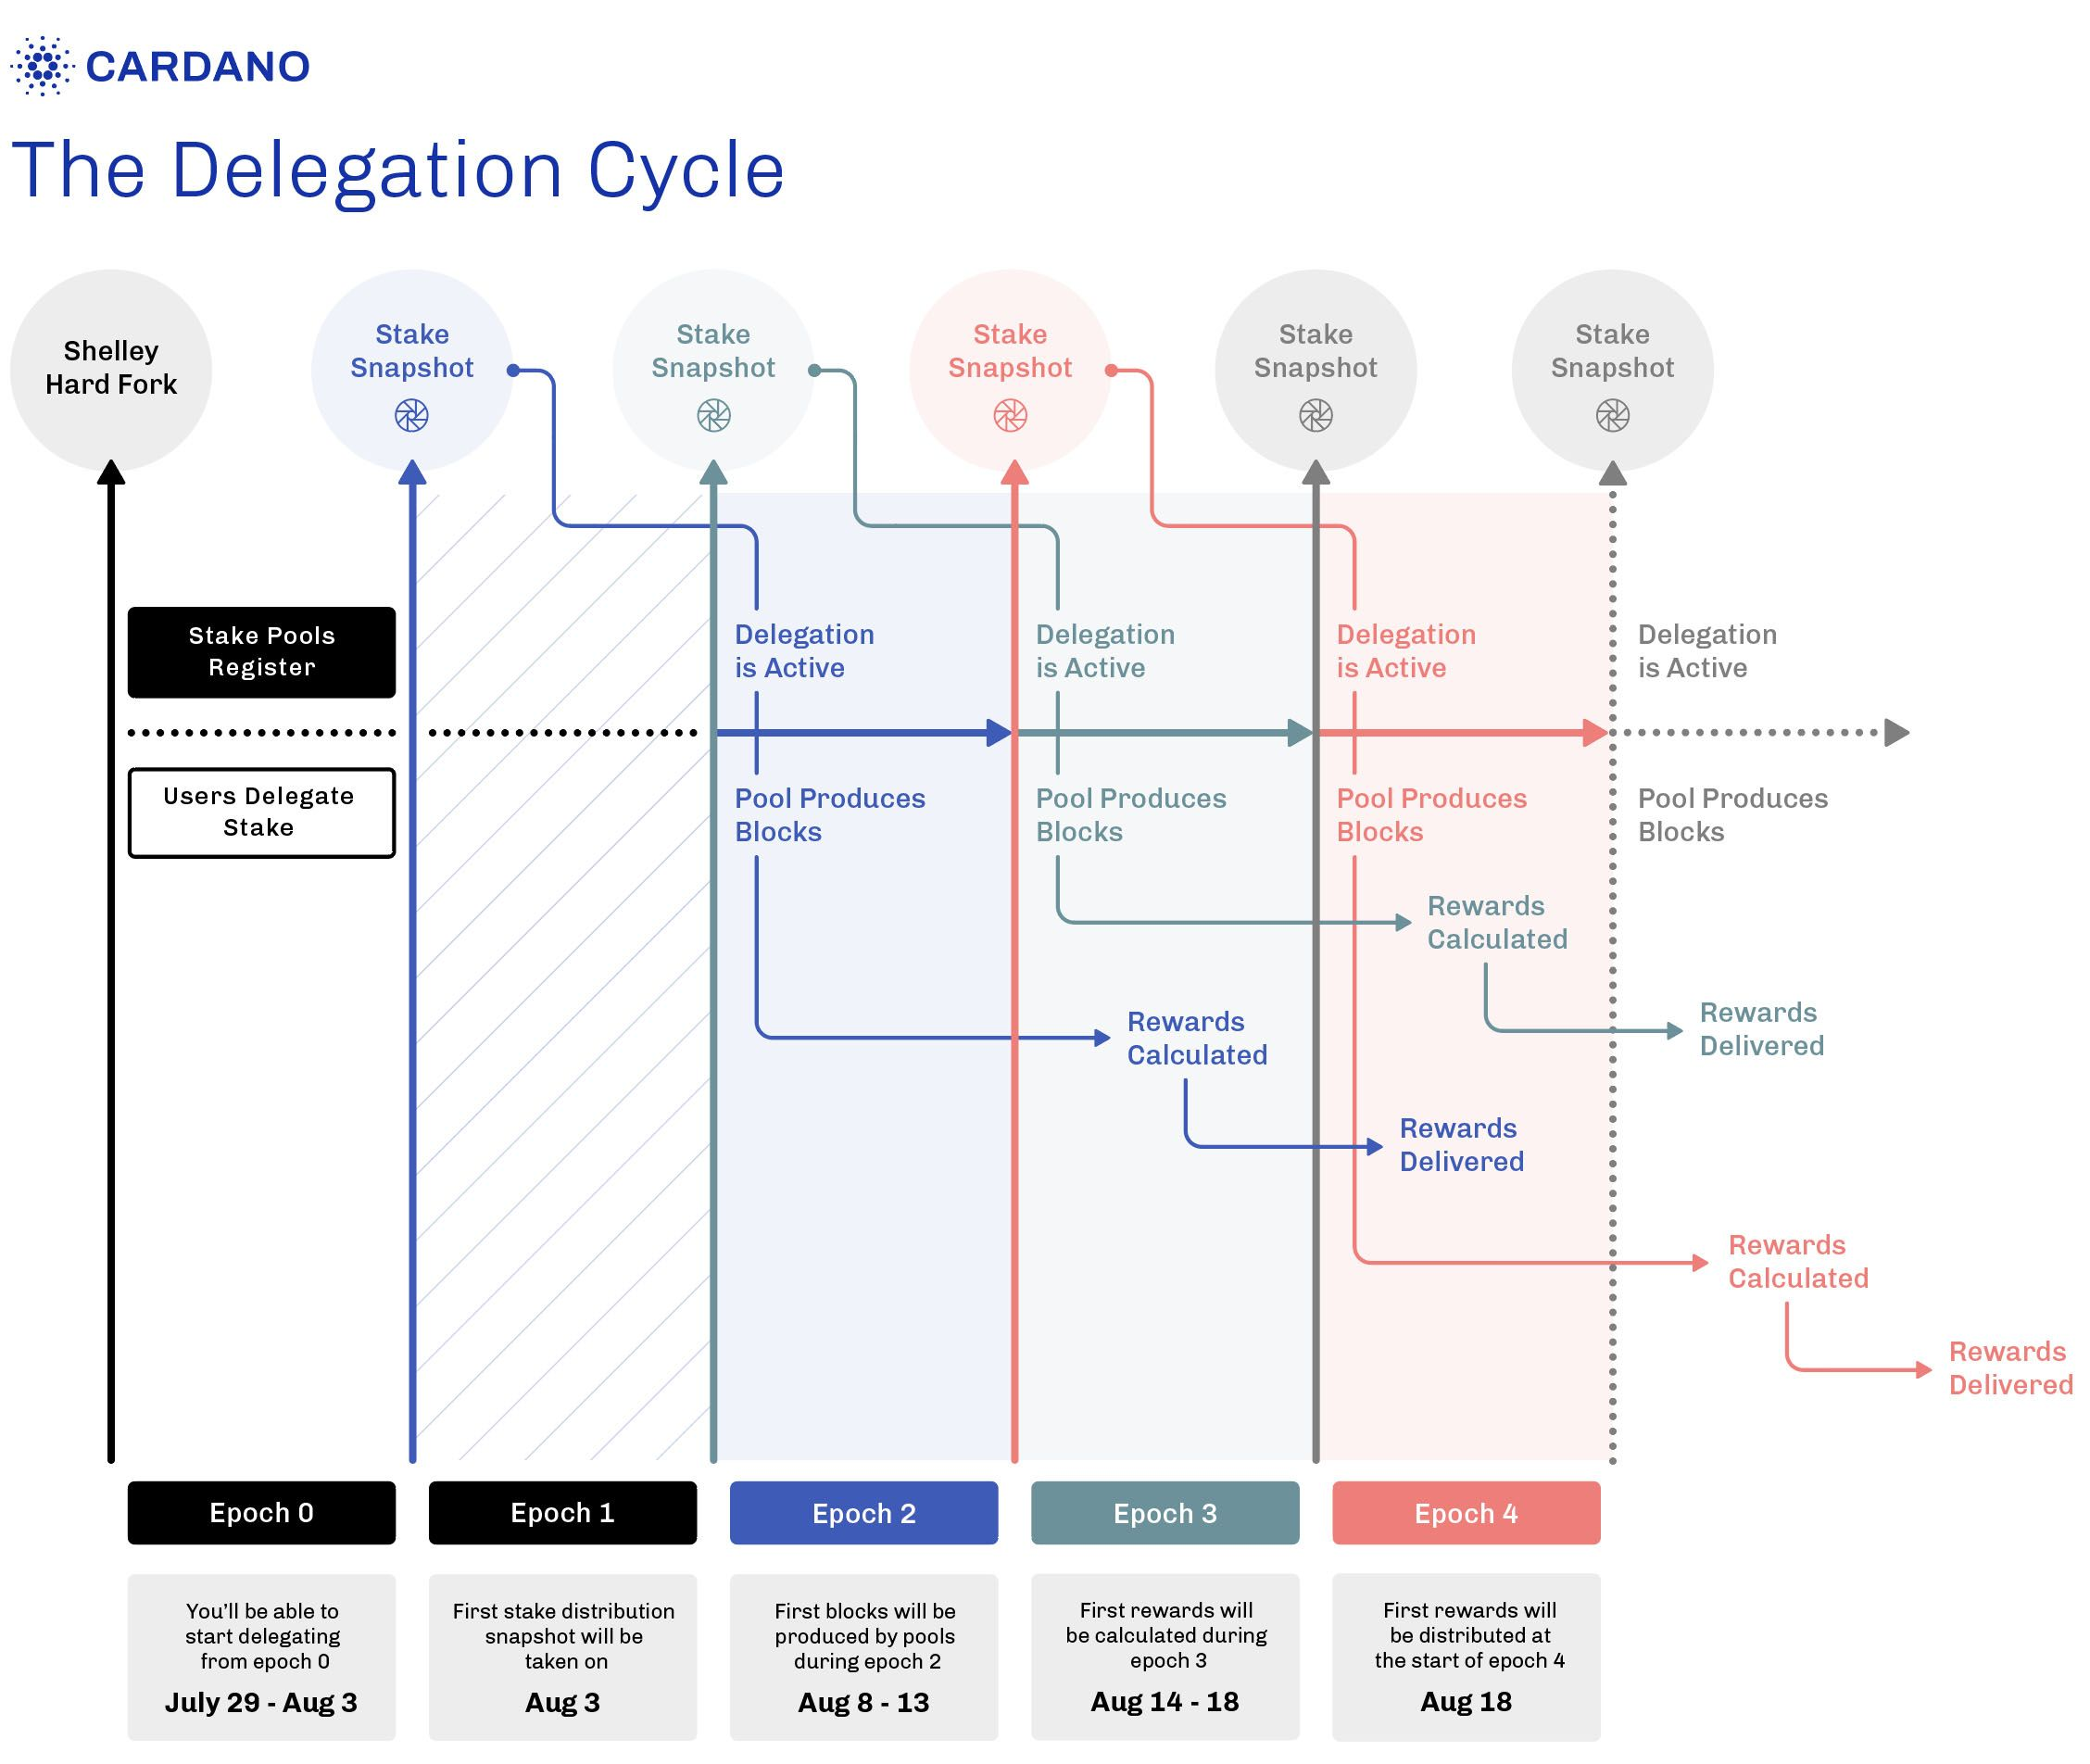 cardano-delegation-cycle.jpg